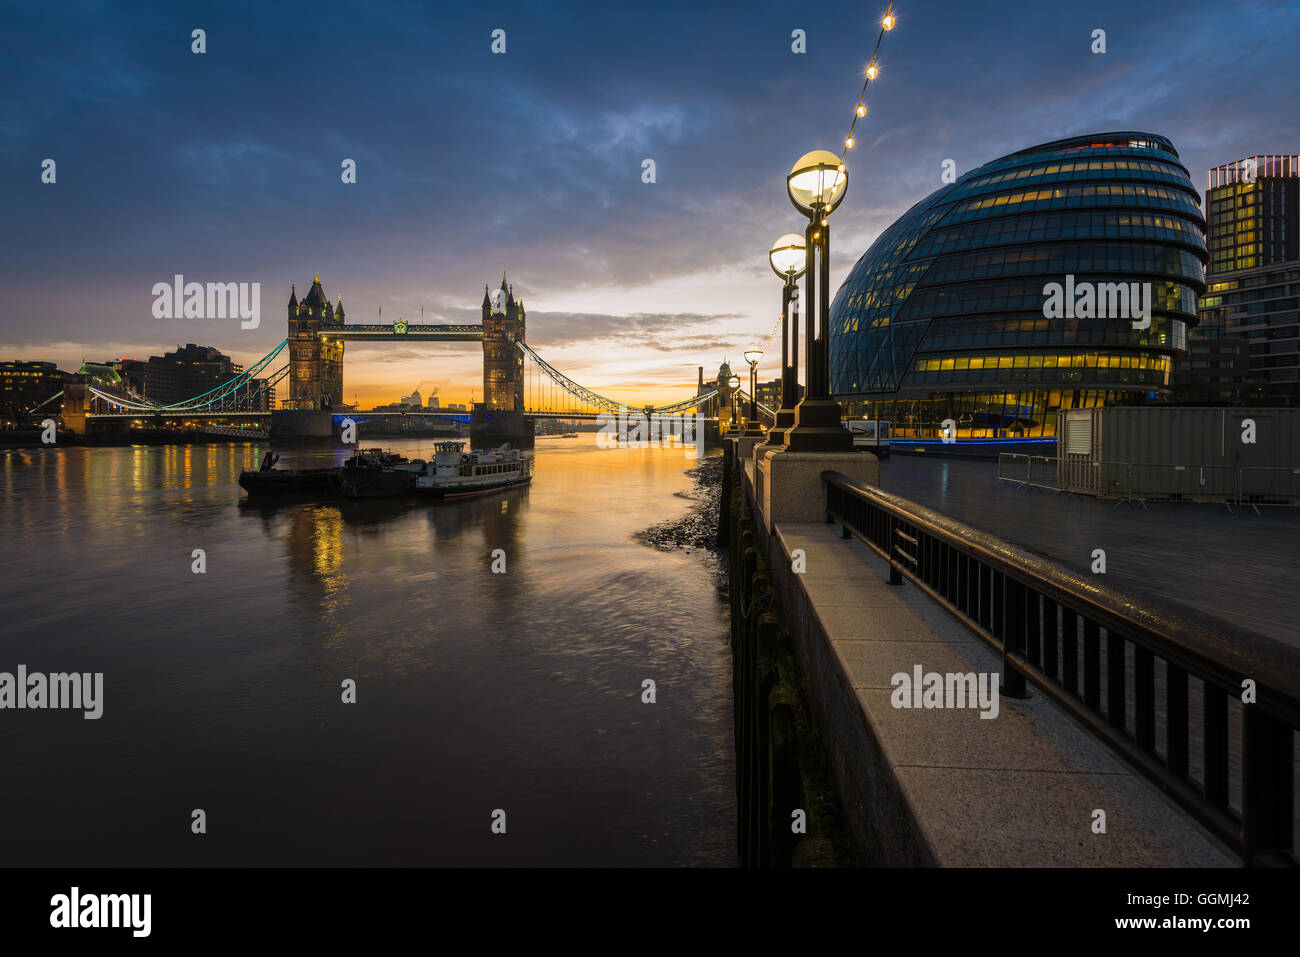 Tower Bridge from More London, London, United Kingdom - Stock Image